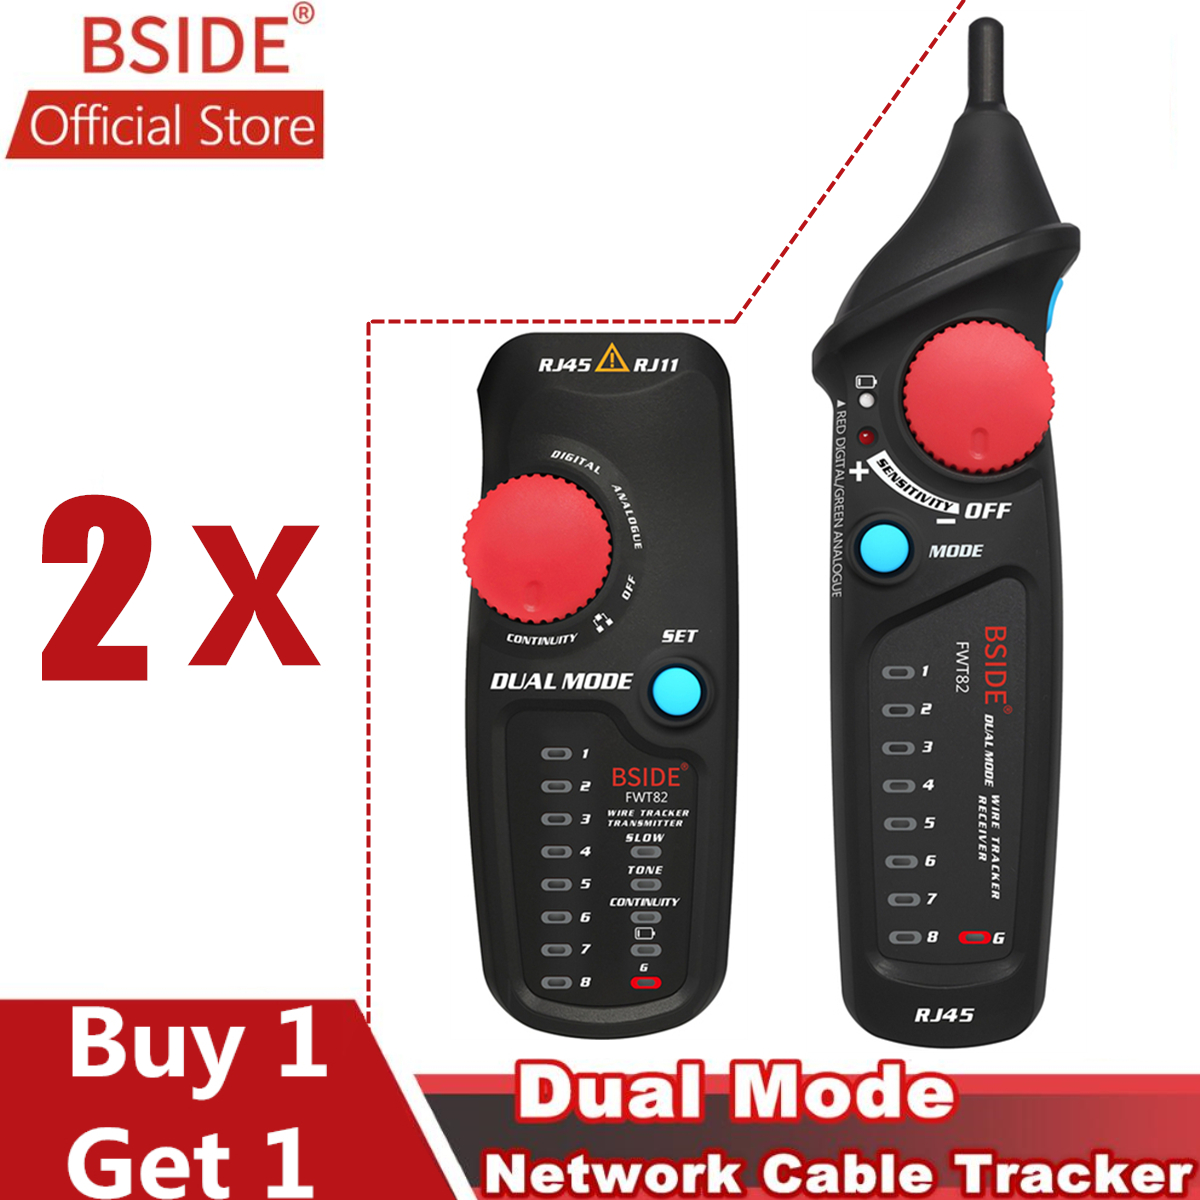 BSIDE FWT82 Dual Mode Network Cable Tracker RJ45 RJ11 Wire Toner Ethernet LAN Tracer Analyzer Detector Line Finder